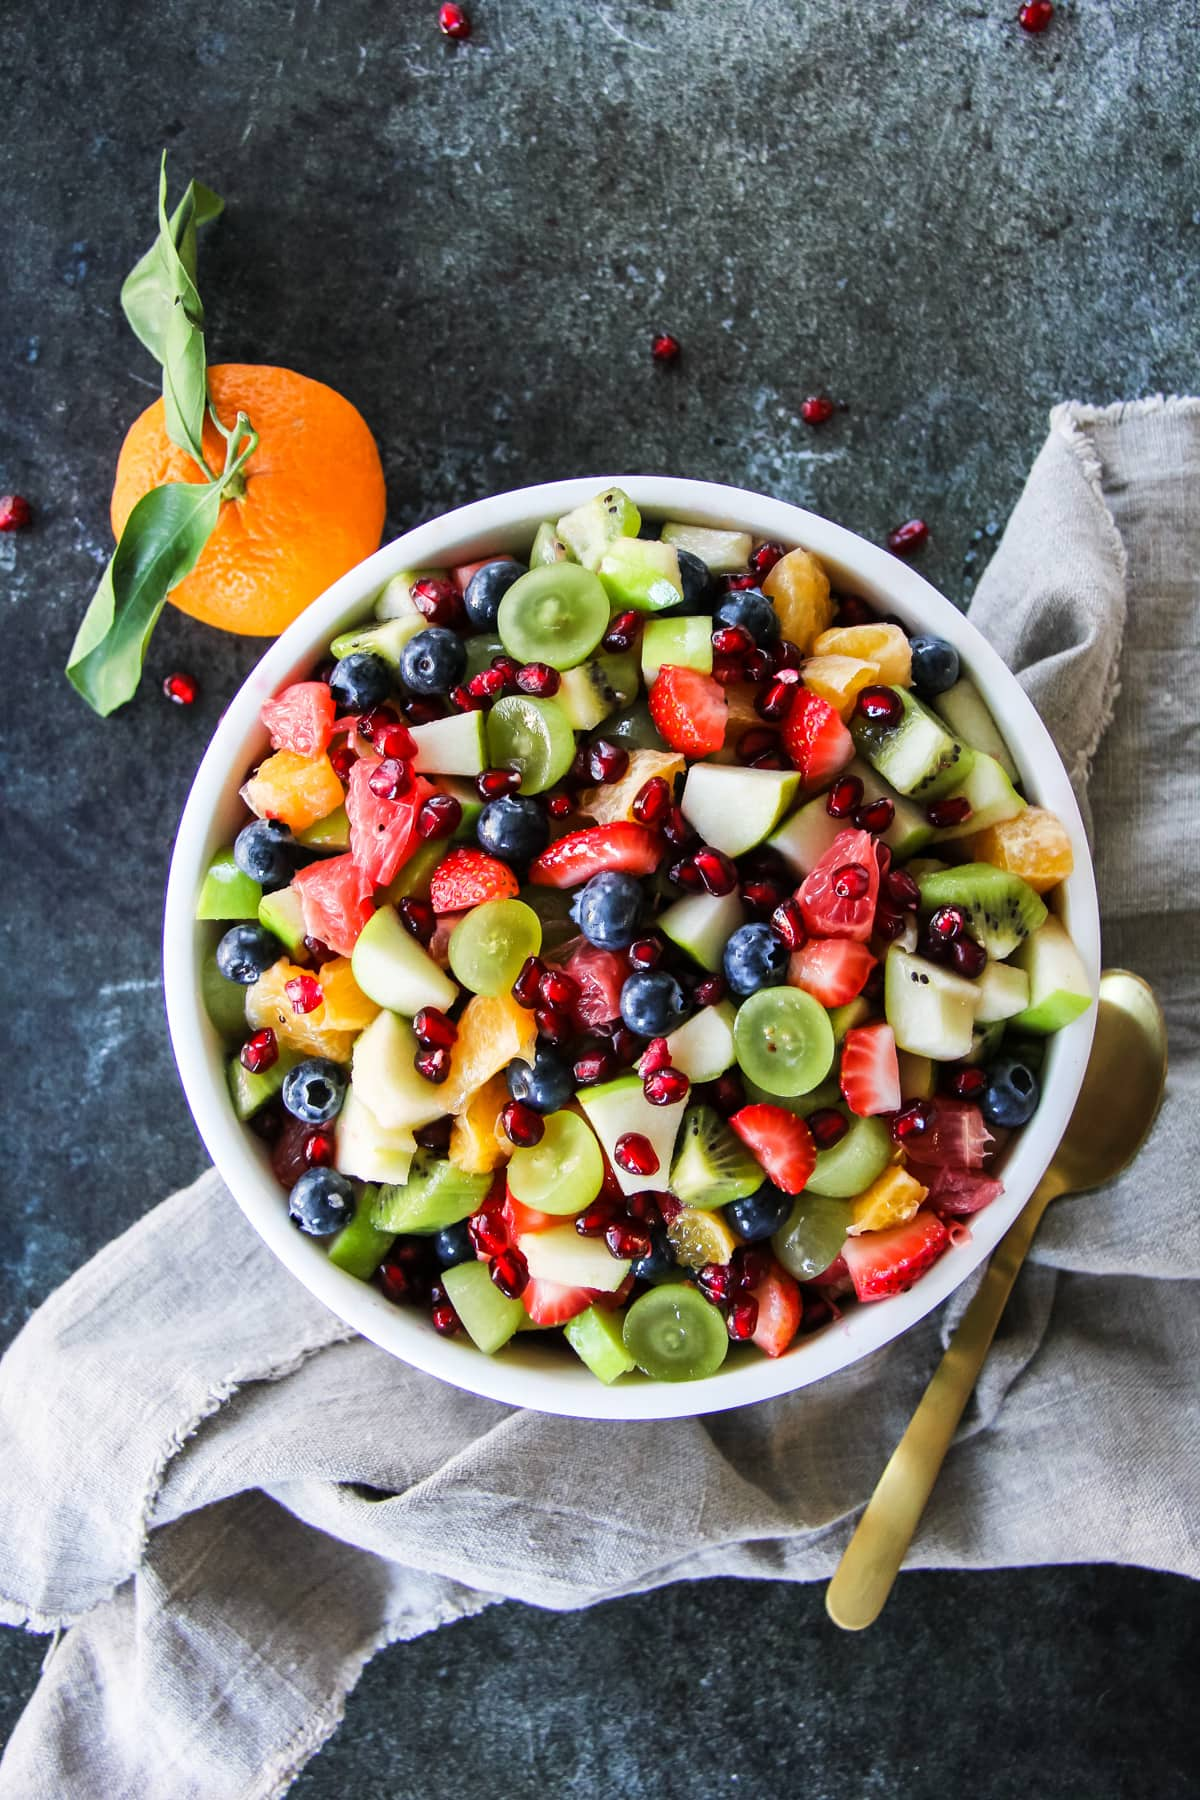 a bowl of fruit salad on a linen napkin with a spoon